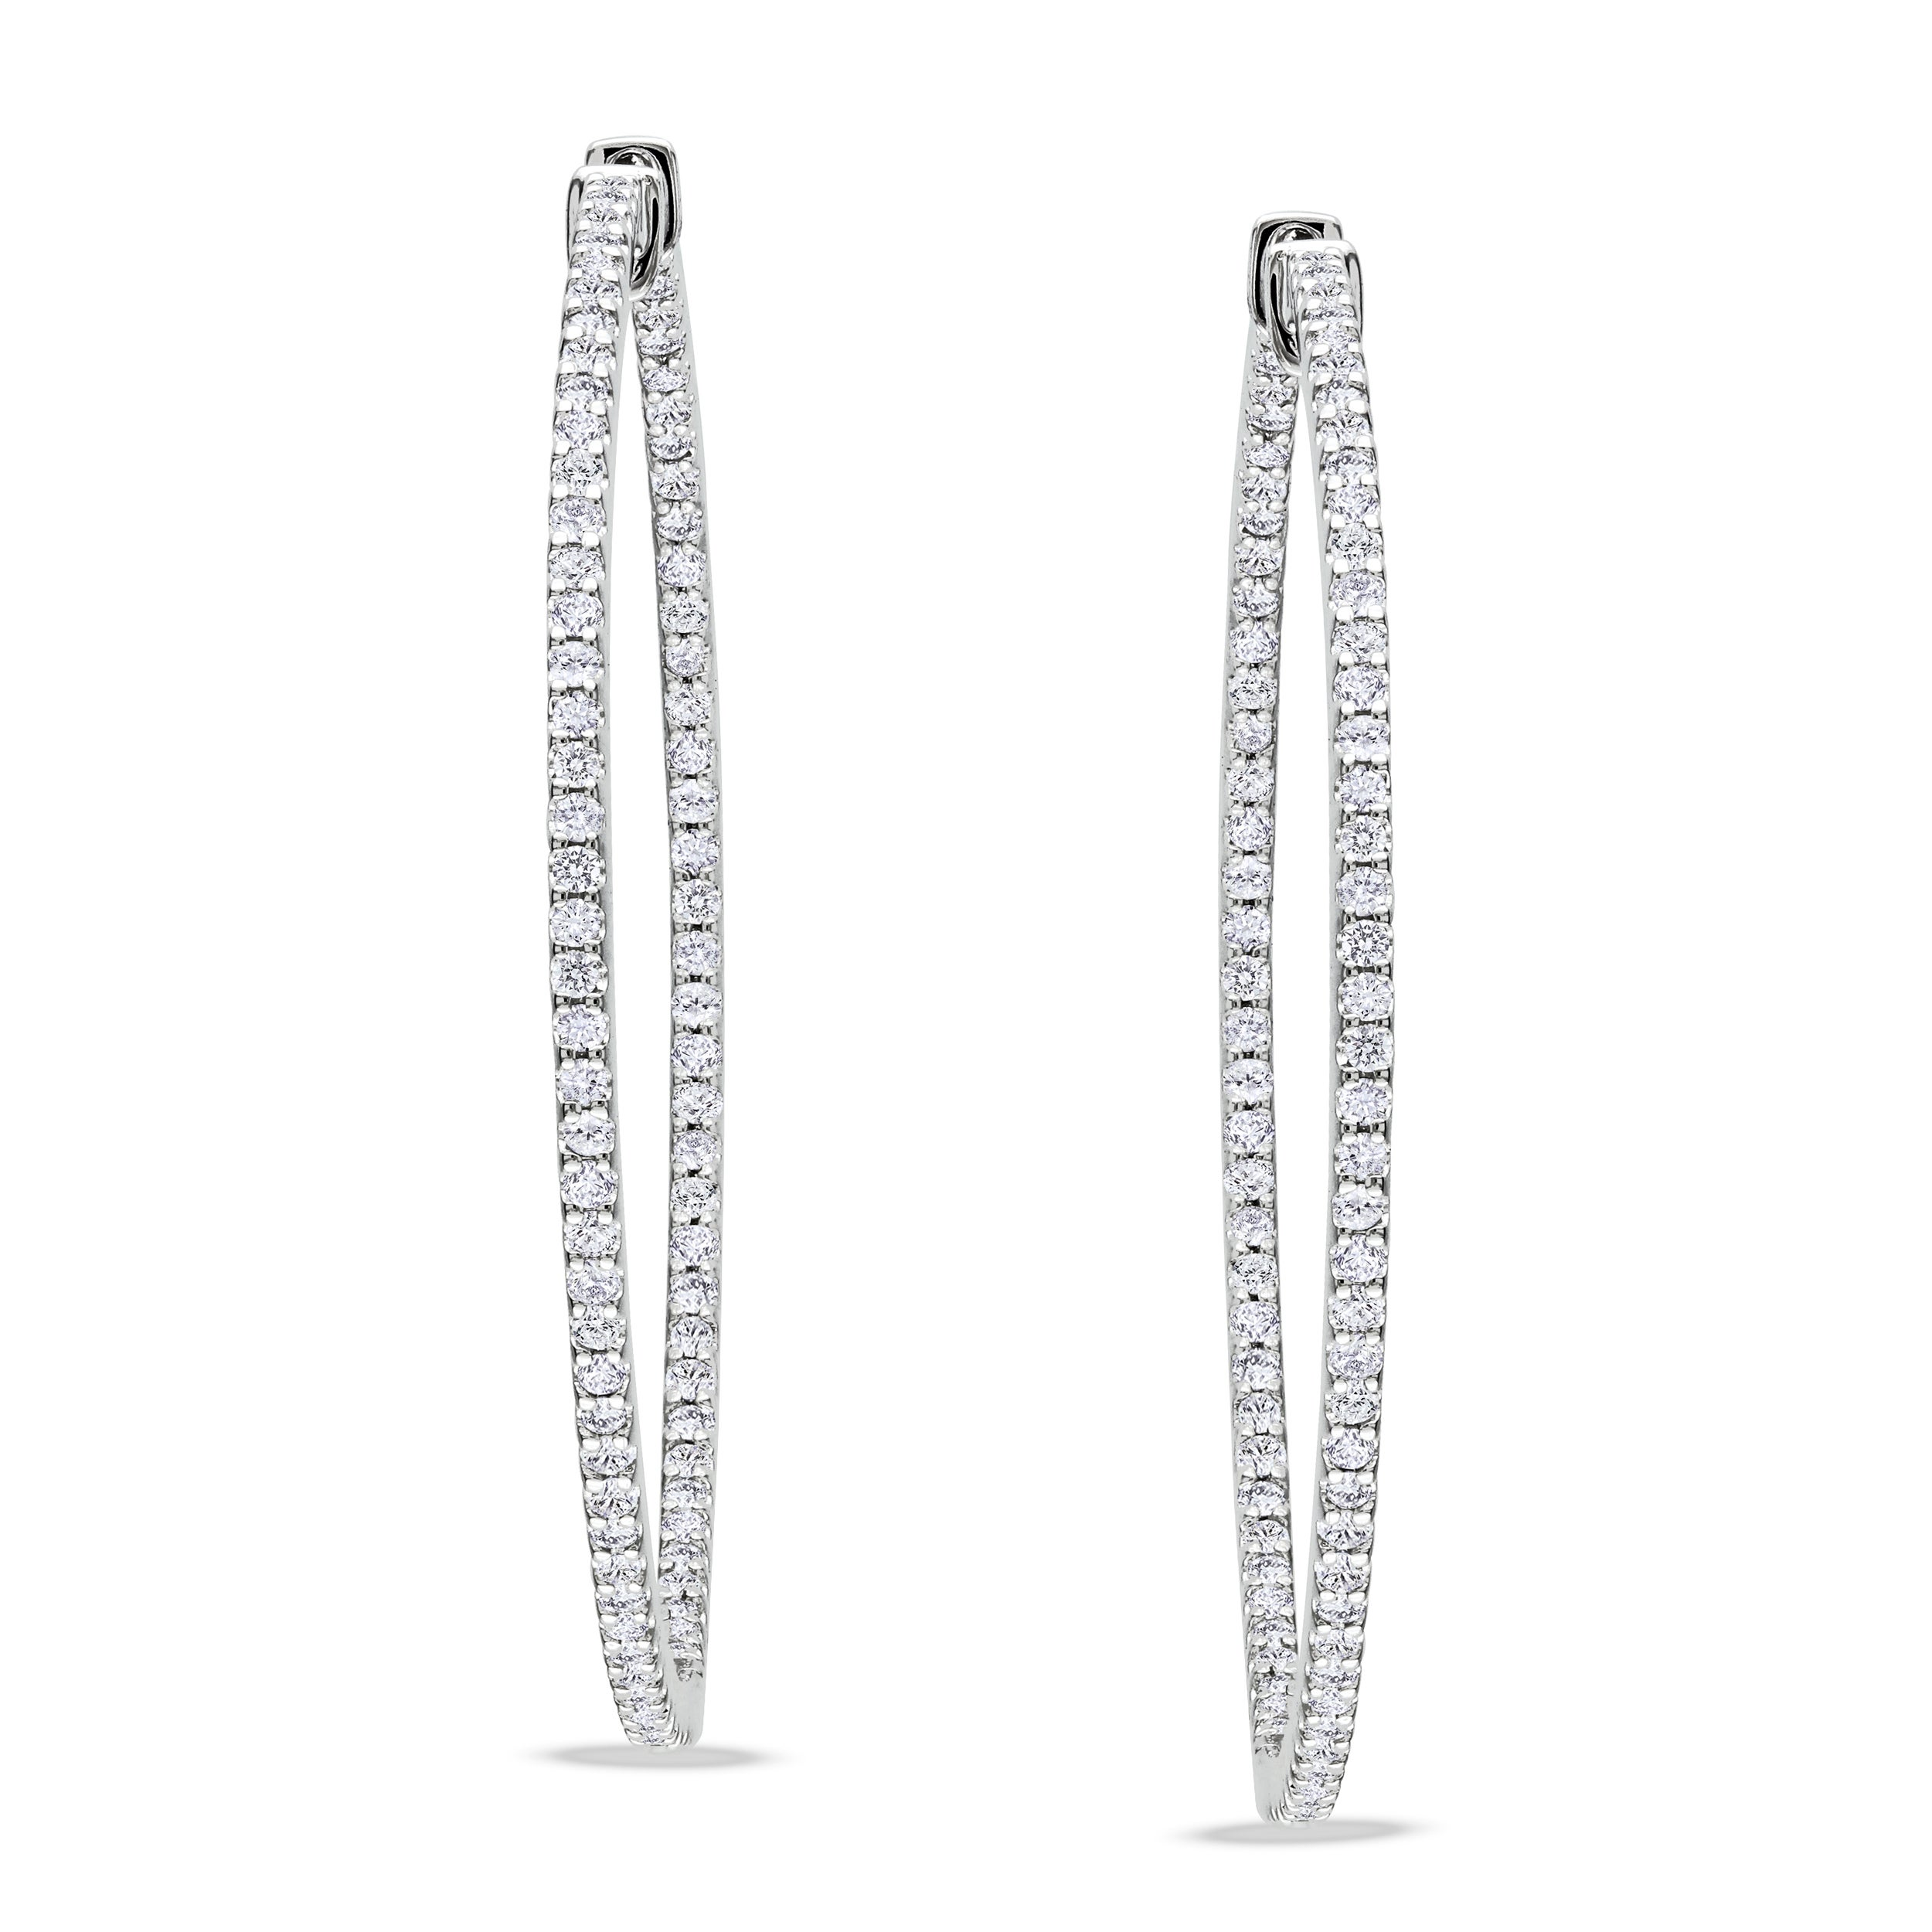 Miadora Design 14k White Gold 1ct TDW Diamond Hoop Earrings